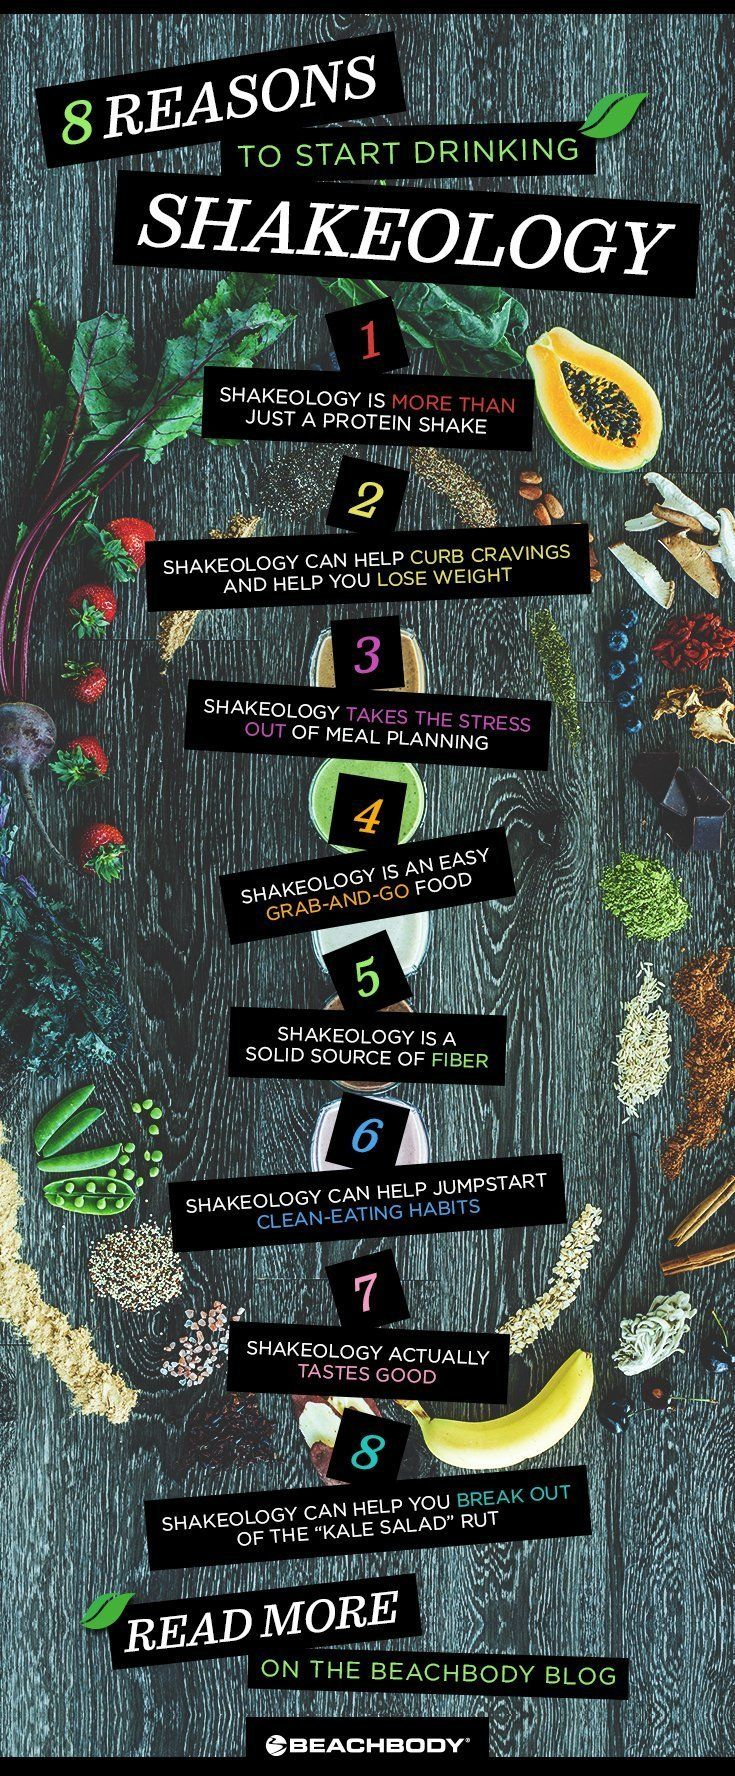 What exactly is Shakeology? Read the full blog to get the run down. Shakeology recipes // what is in Shakeology // healthy smoothies // superfoods // Beachbody // Beachbody Blog // #shakeology